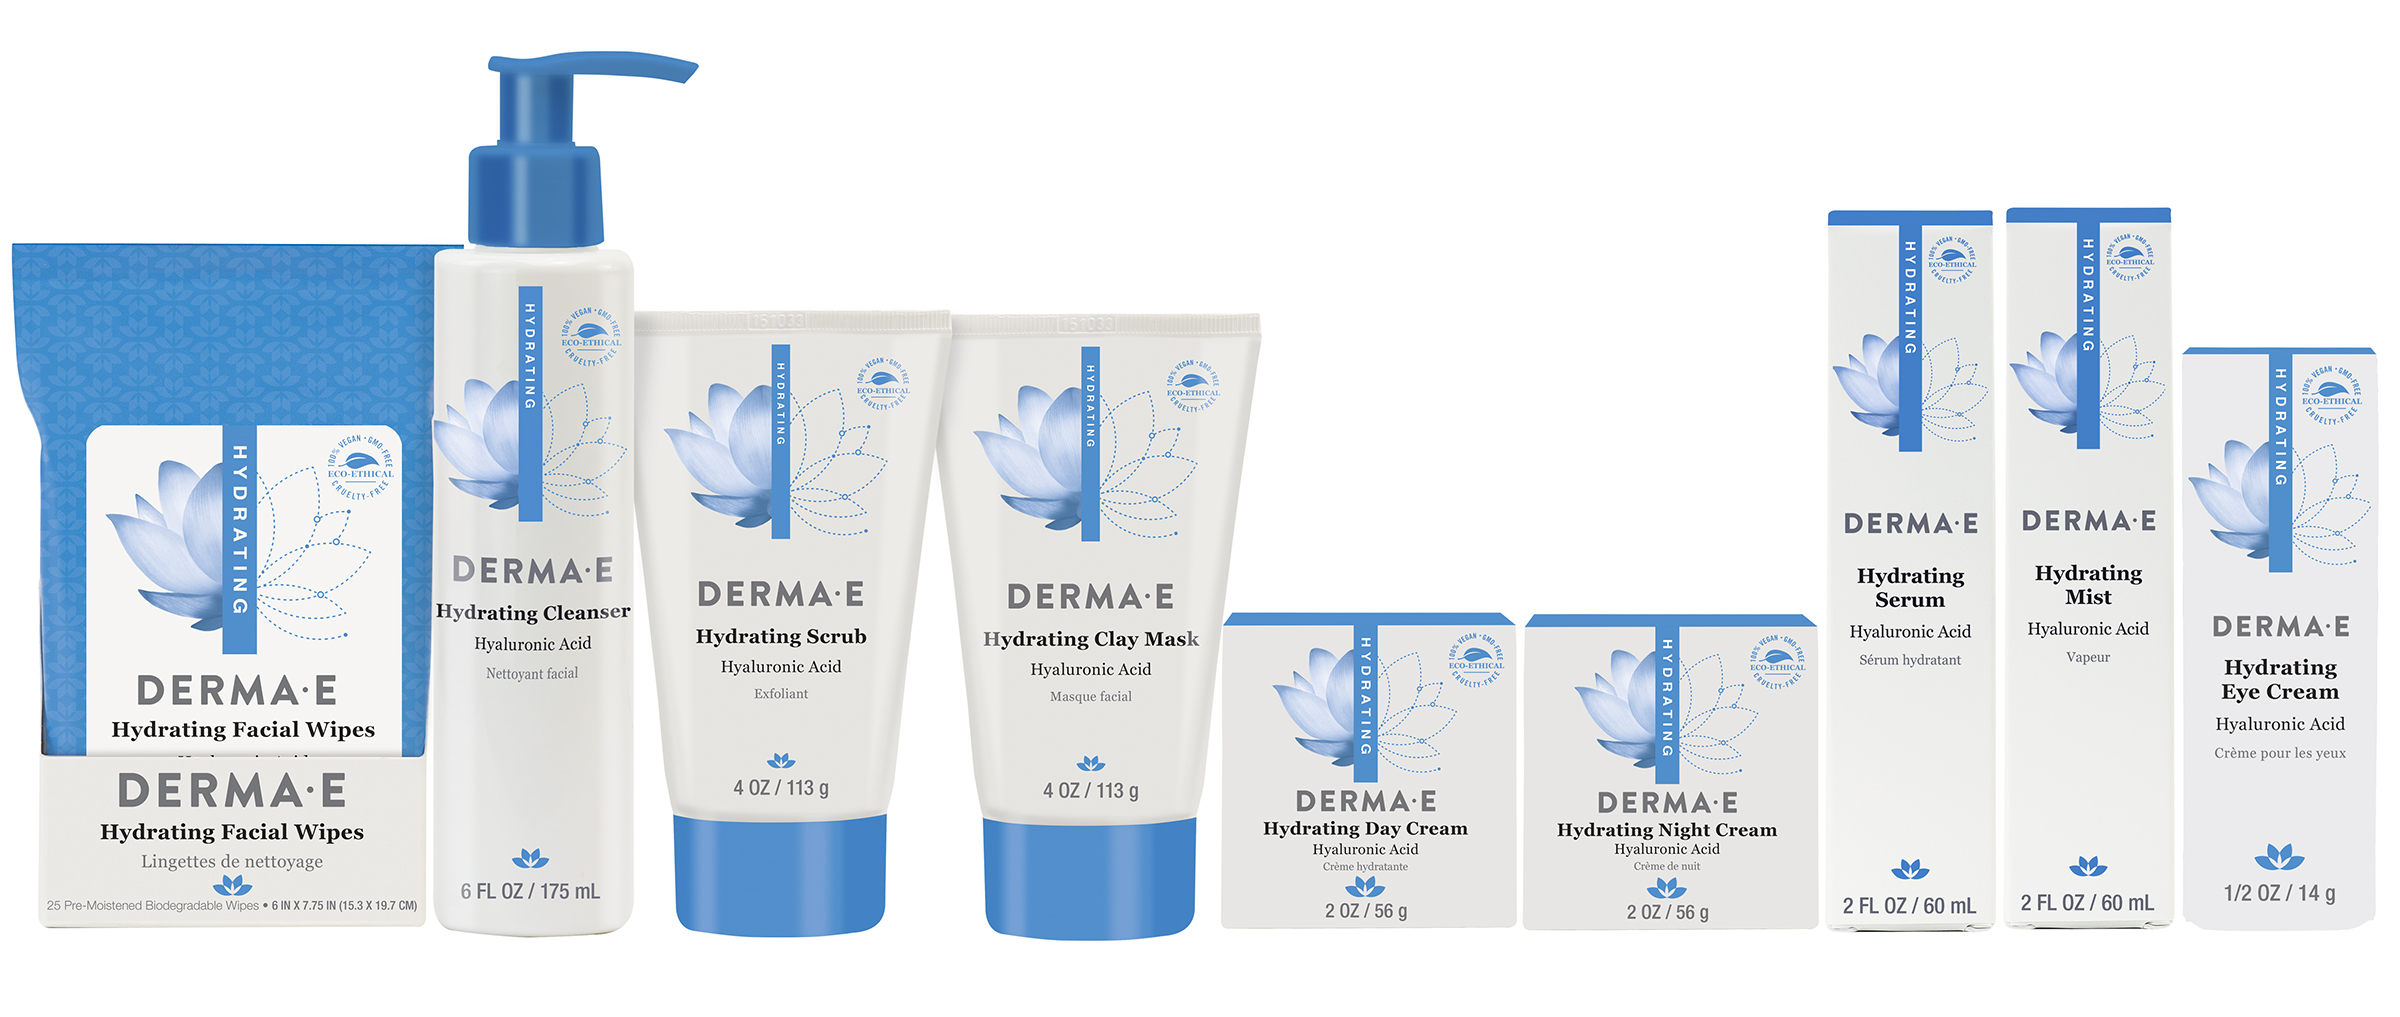 derma e, products, skin care, new packaging, derma e skin care, review, product review, day cream, packaging, branding, beauty, anti-aging, cream,